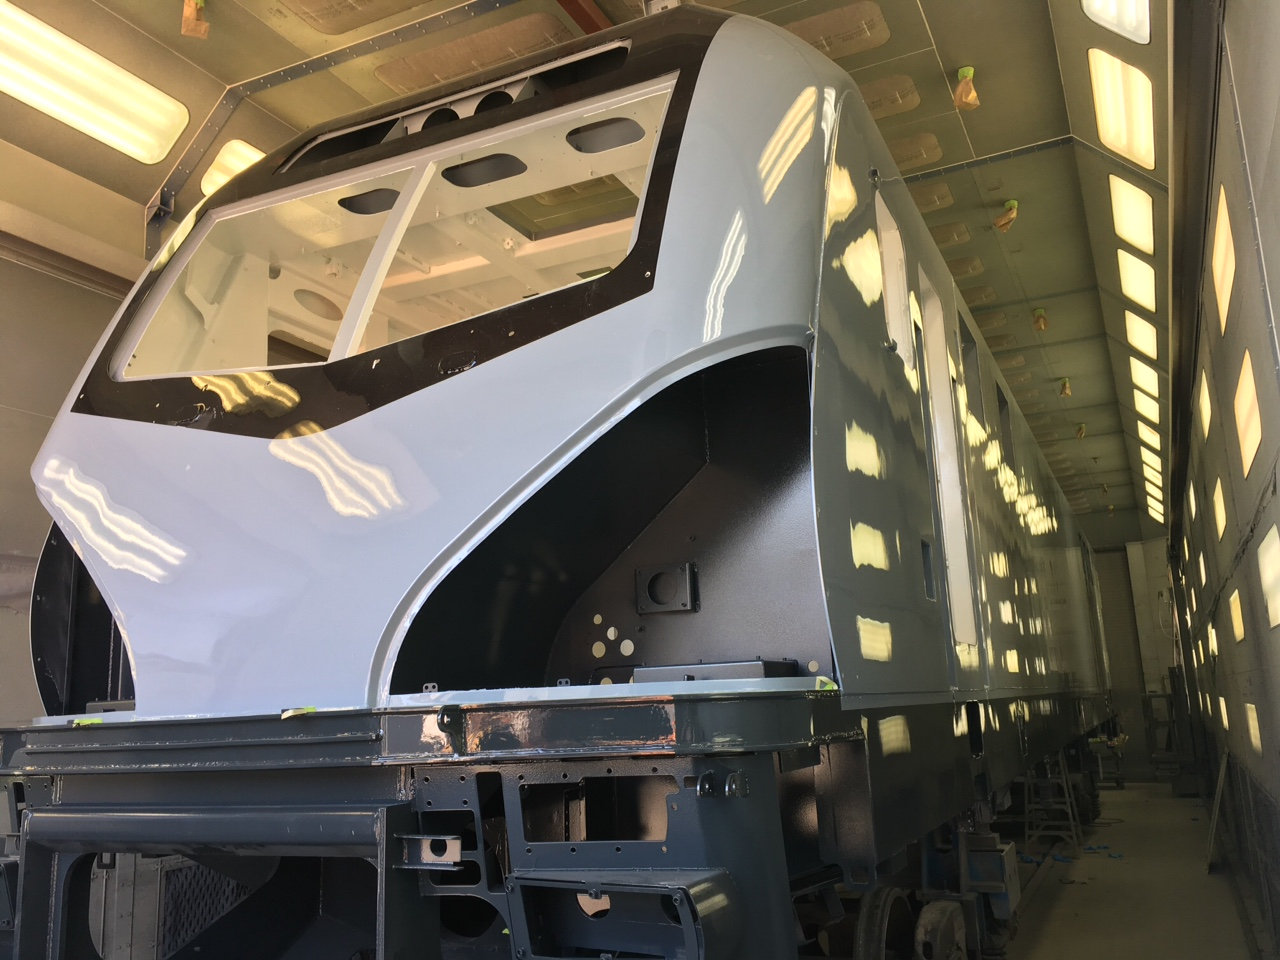 ACS-64 locomotive in production at Siemens.